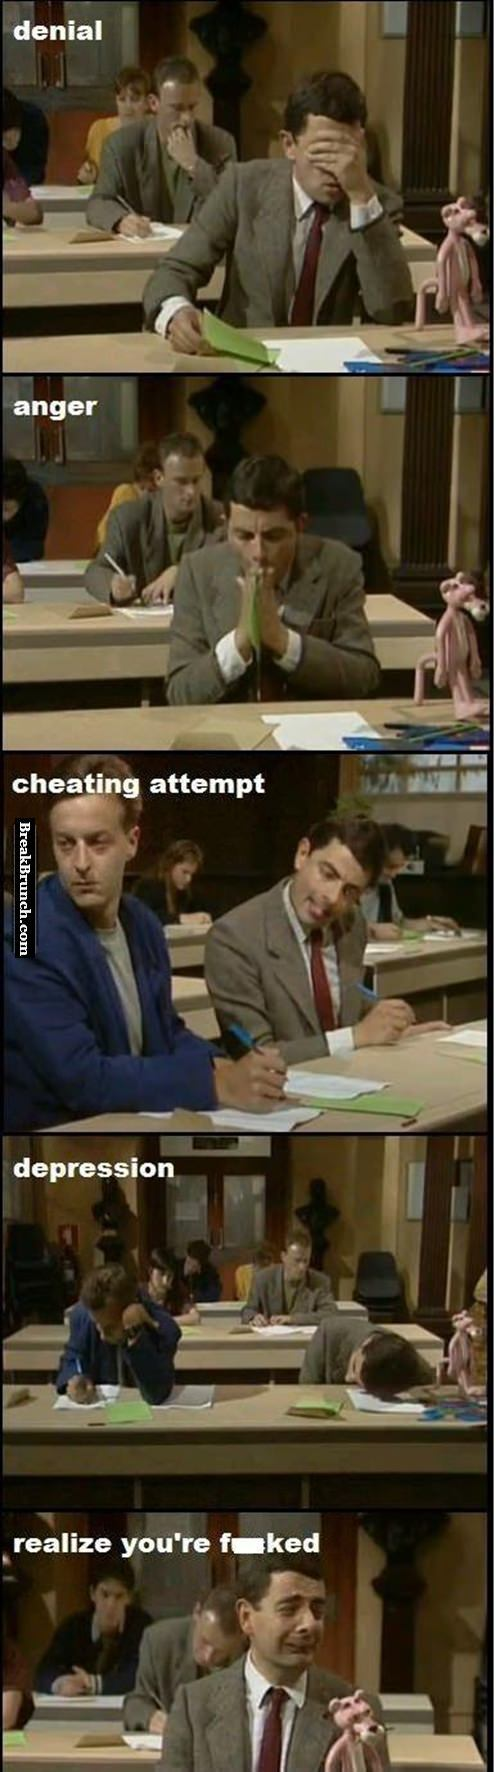 When you are taking the exam